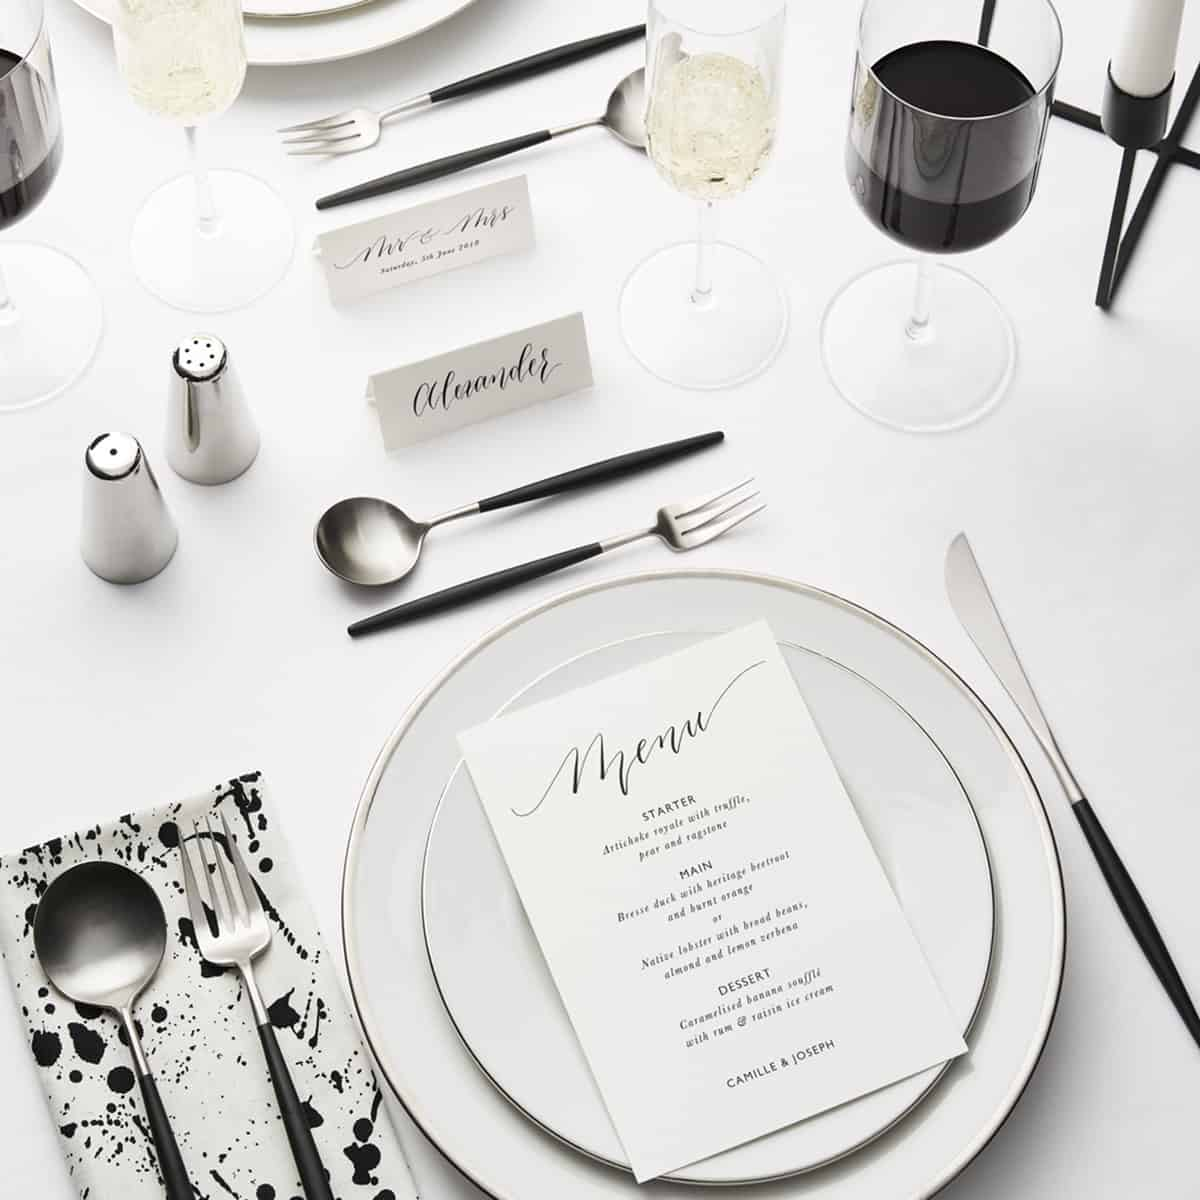 05.18_TheFold_WeddingTableSettings_ClassicCalligraphy_social